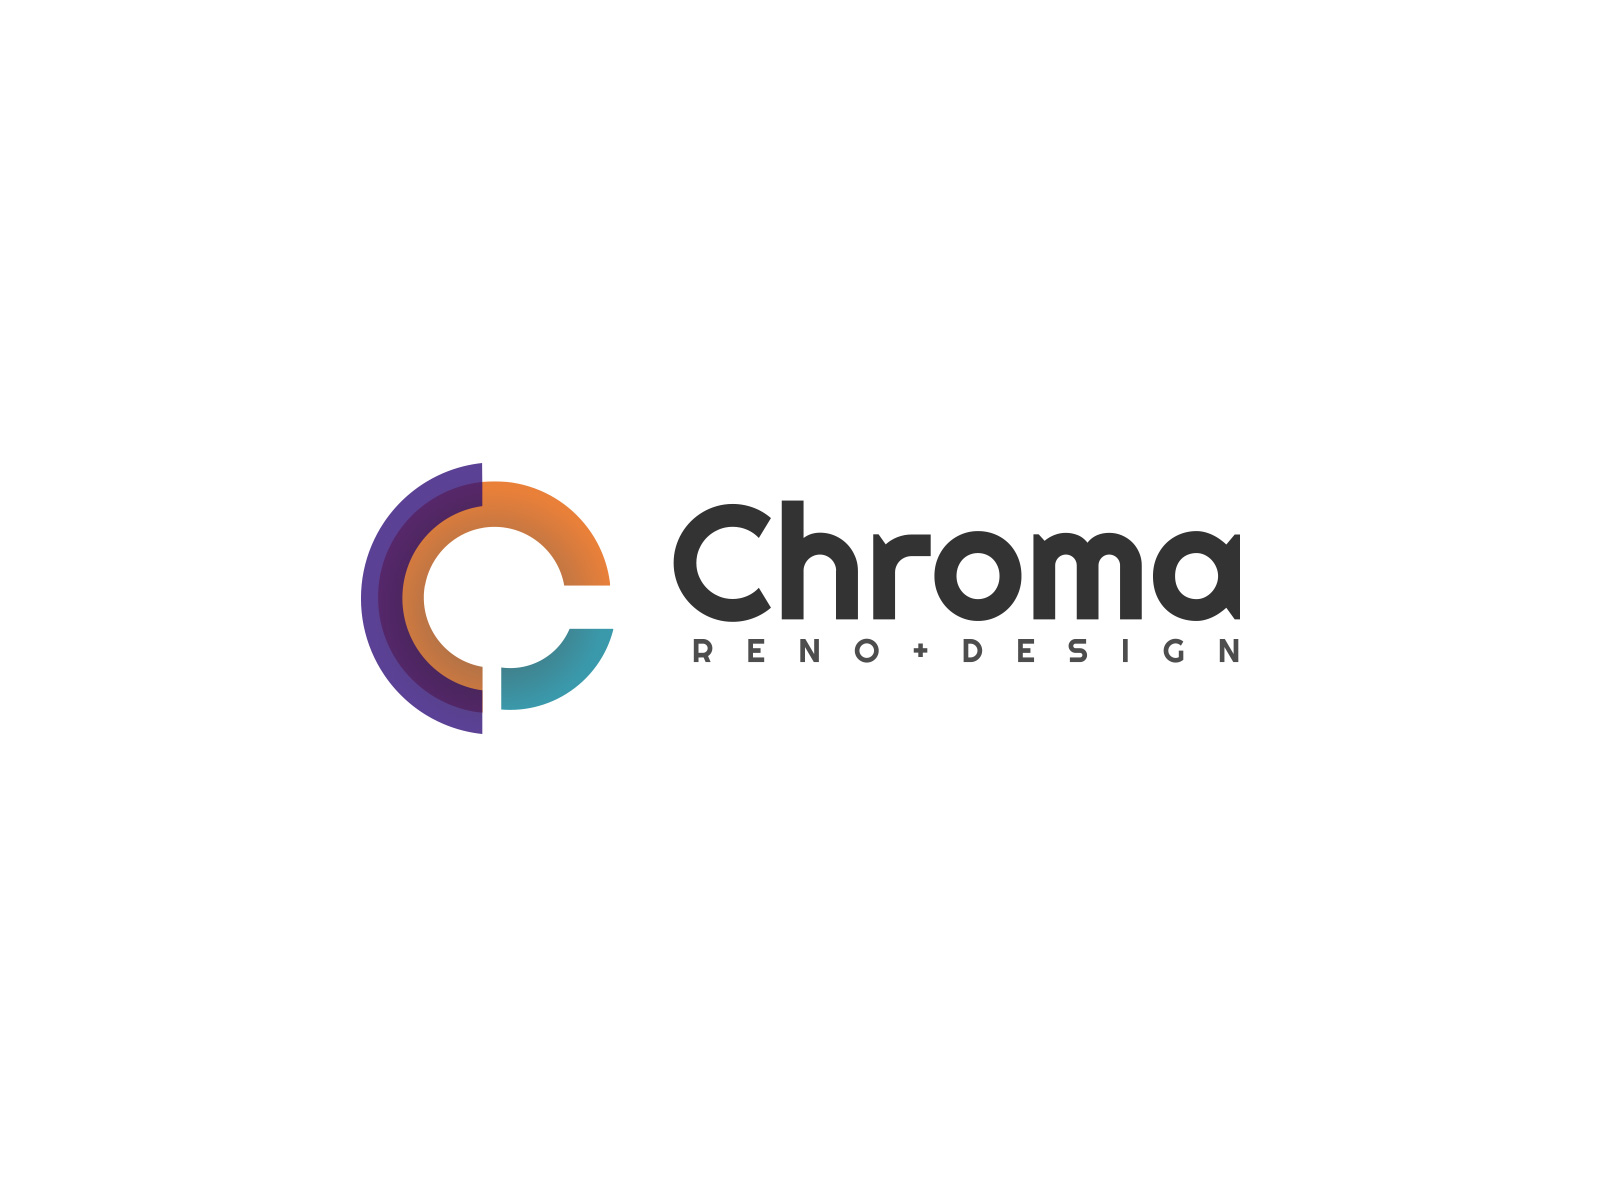 Logo Design by olii - Entry No. 163 in the Logo Design Contest Inspiring Logo Design for Chroma Reno+Design.